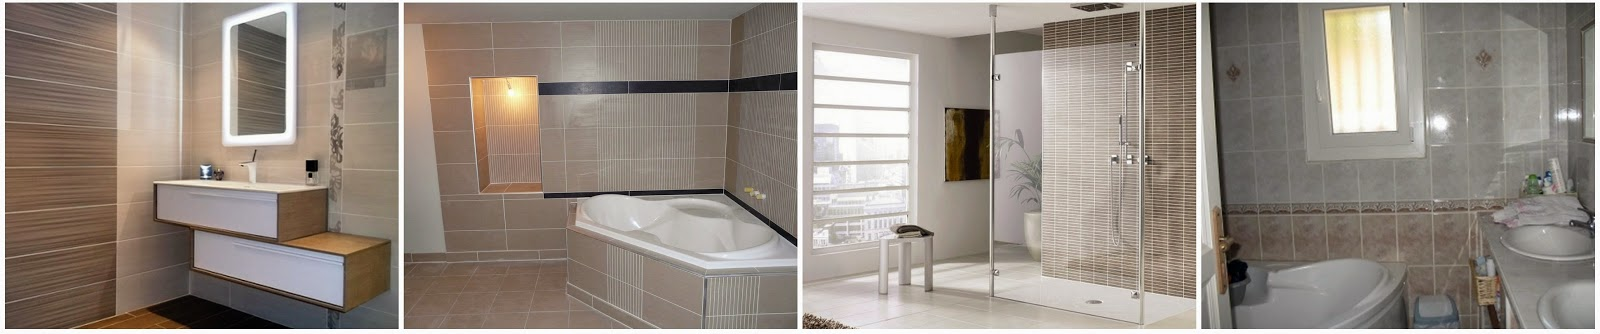 revetement sol salle de bain pas cher renov ex. Black Bedroom Furniture Sets. Home Design Ideas